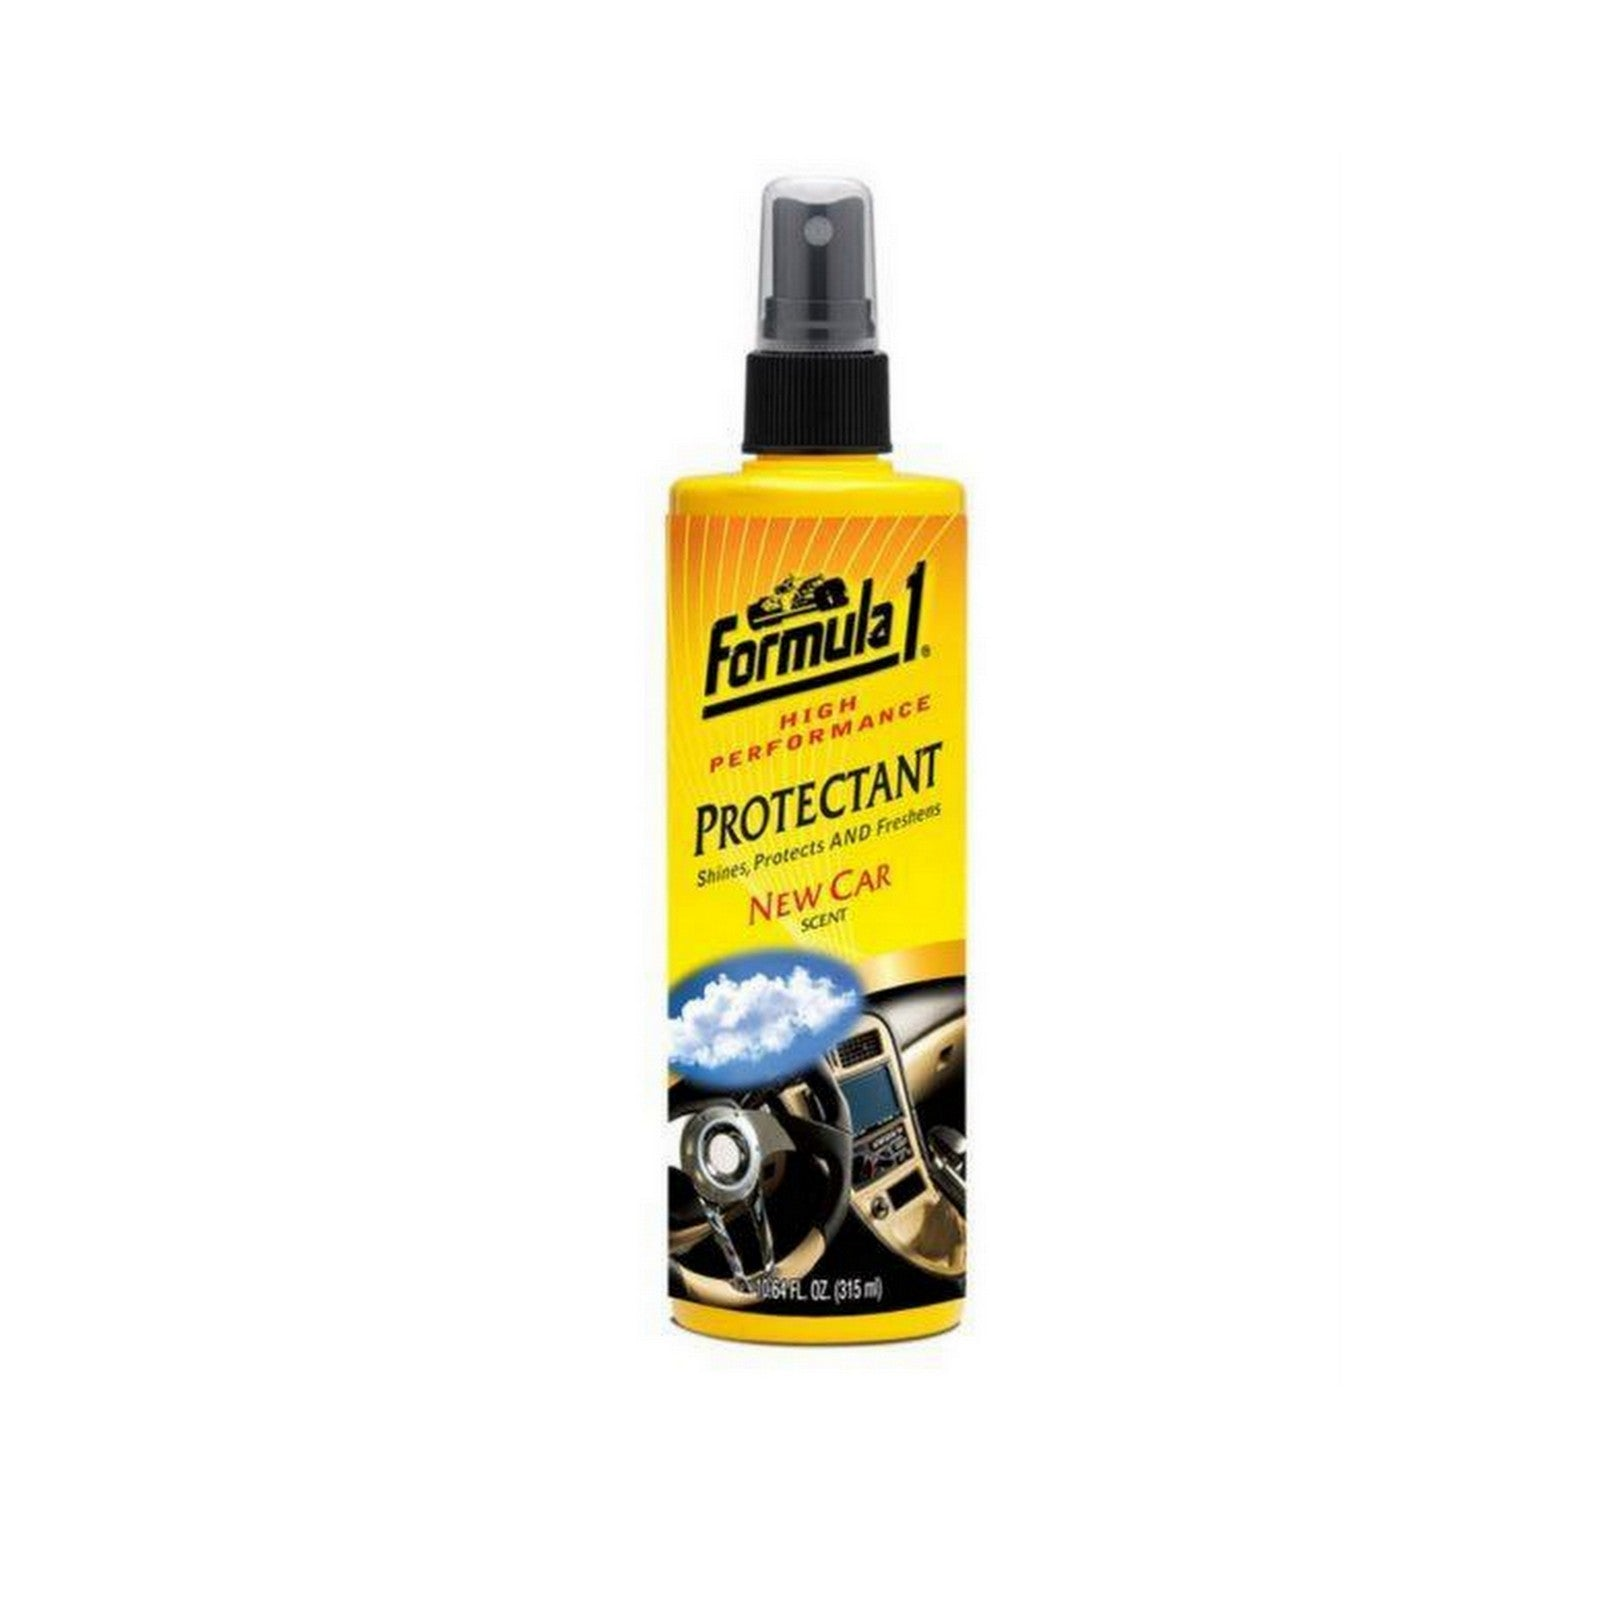 FORMULA1 - DASHBOARD & DOOR POLISH  | PROTECTANT